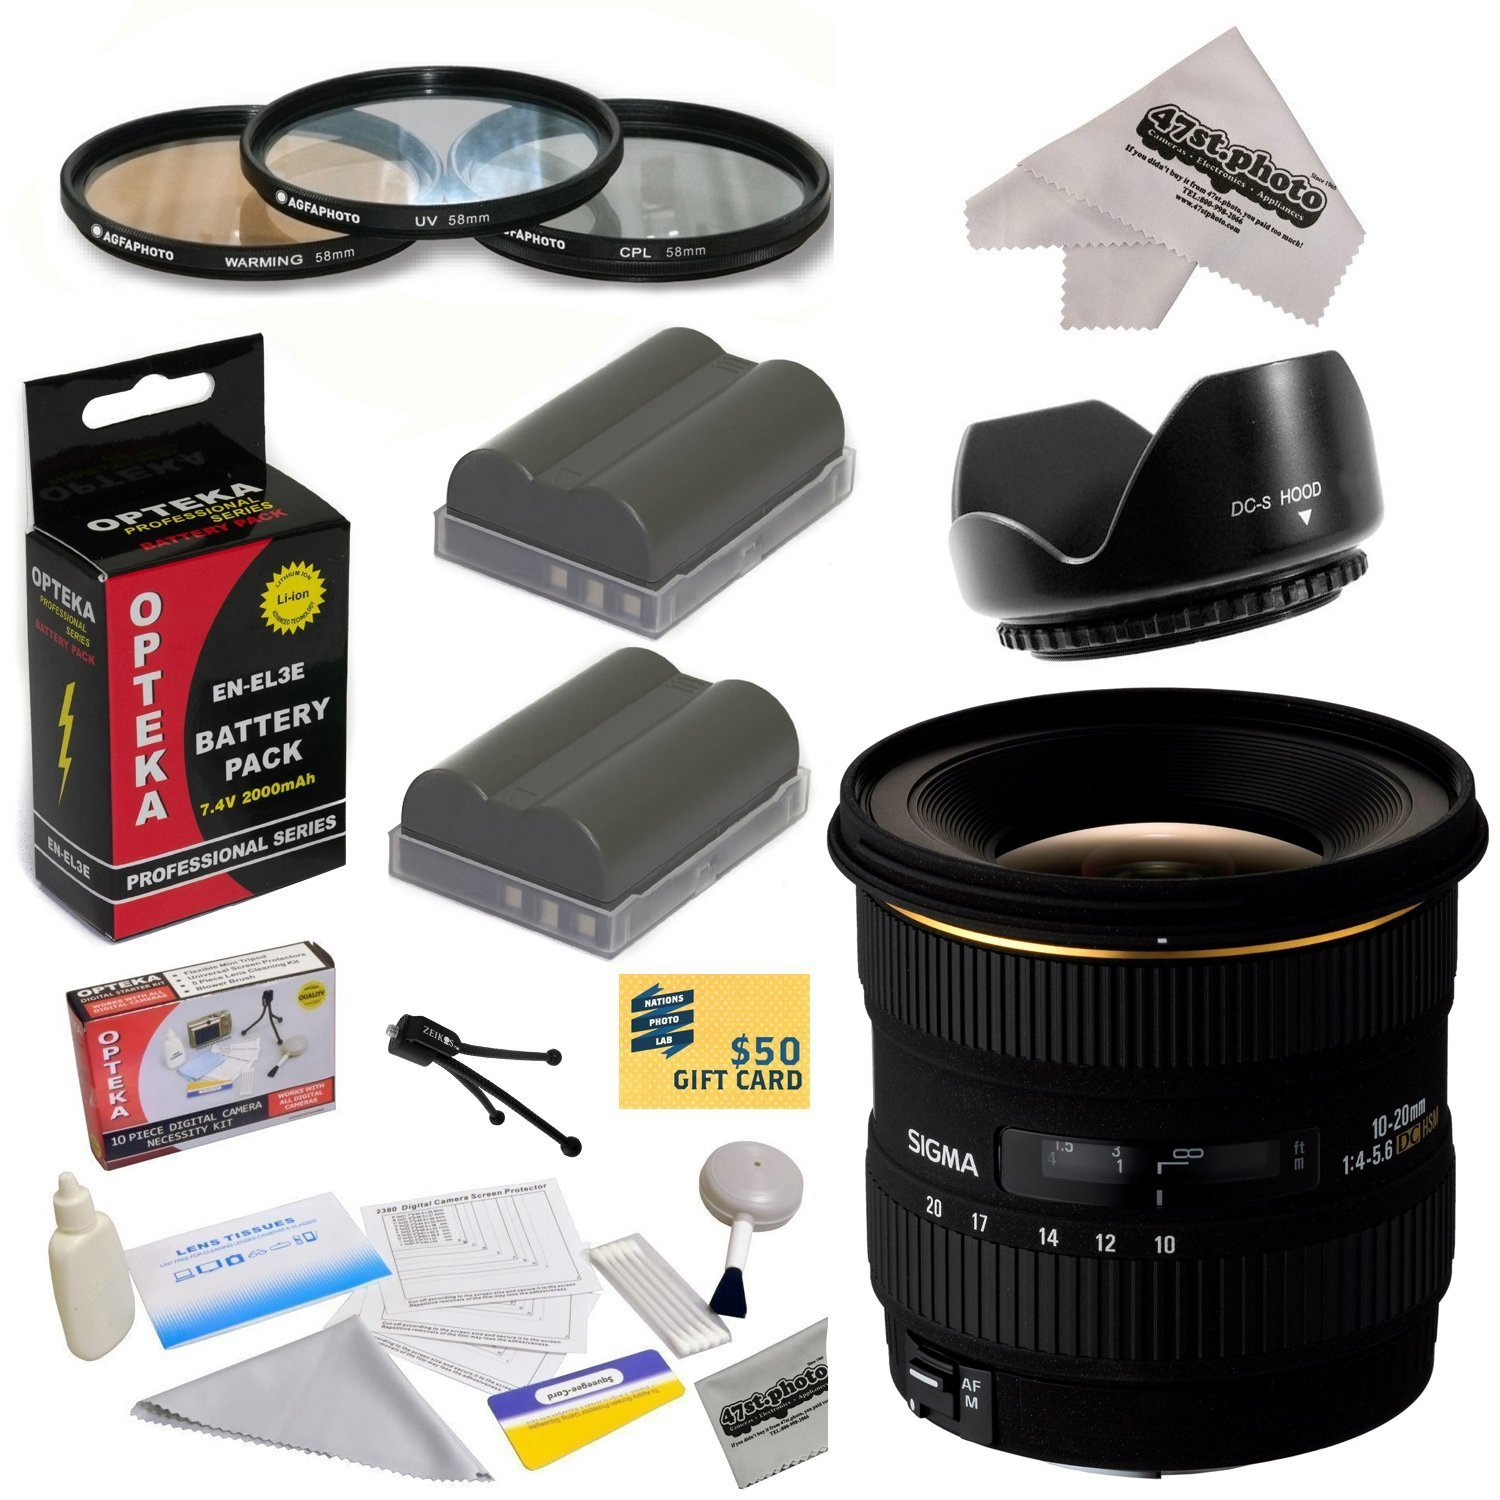 Sigma 10-20mm f/4-5.6 EX DC HSM Autofocus Lens for Nikon D700 D300S D300 D200 D100 D90 D80 D70 with 3 Piece Filter Kit, Lens Hood, 2 EN-EL3E Batteries, Cleaning Kit, Microfiber Cloth